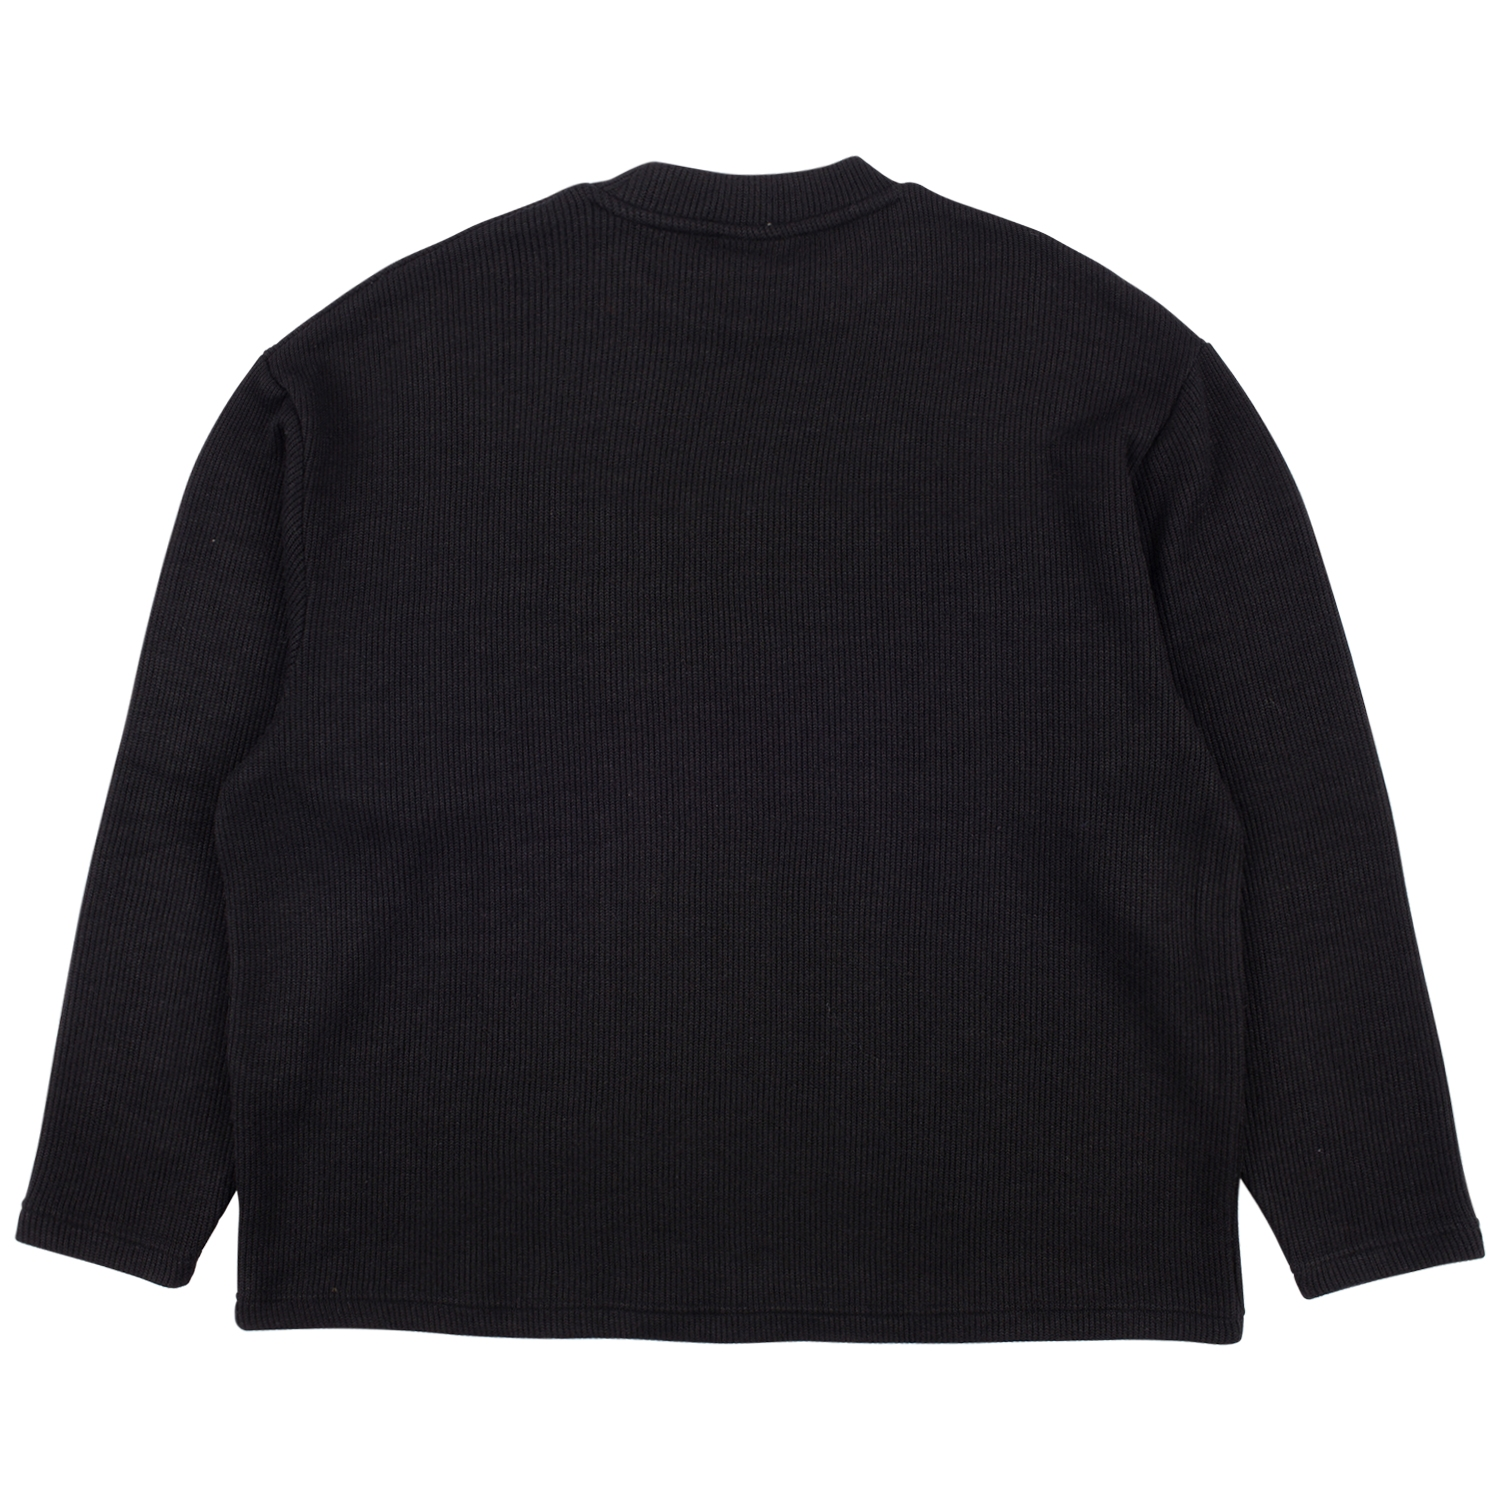 【PLEASURES/プレジャーズ】FRESNO KNIT LONG SLEEVE セーター / BLACK